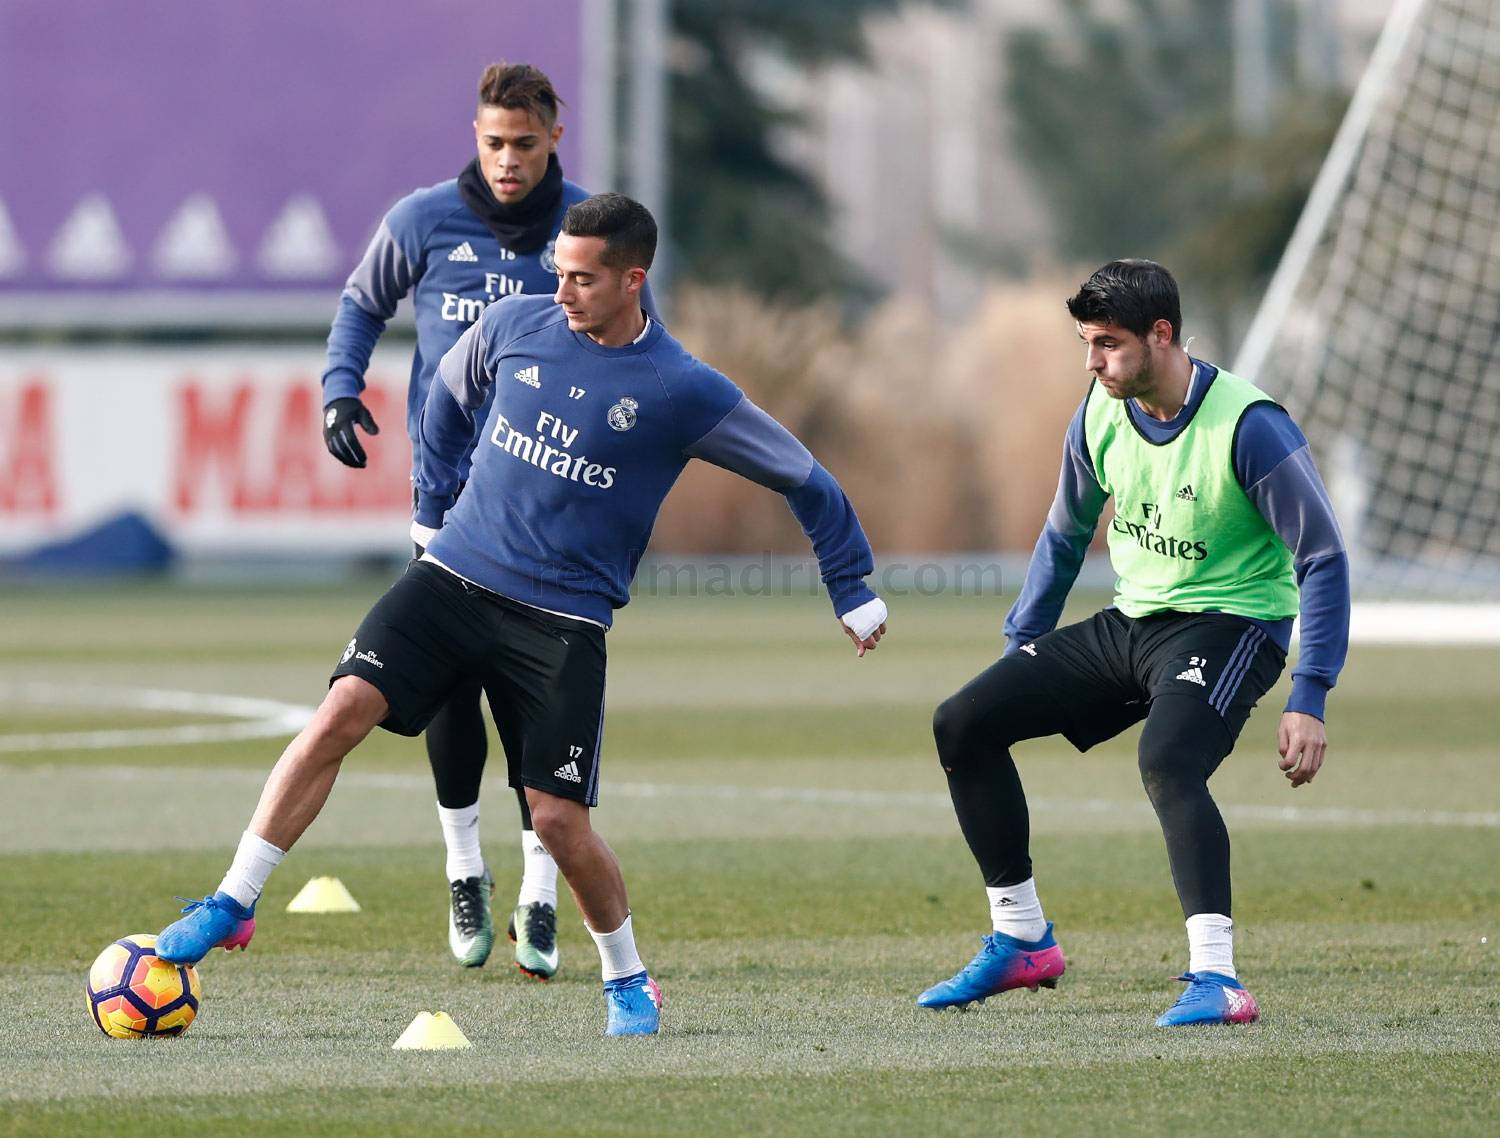 Real Madrid - Entrenamiento del Real Madrid - 26-01-2017